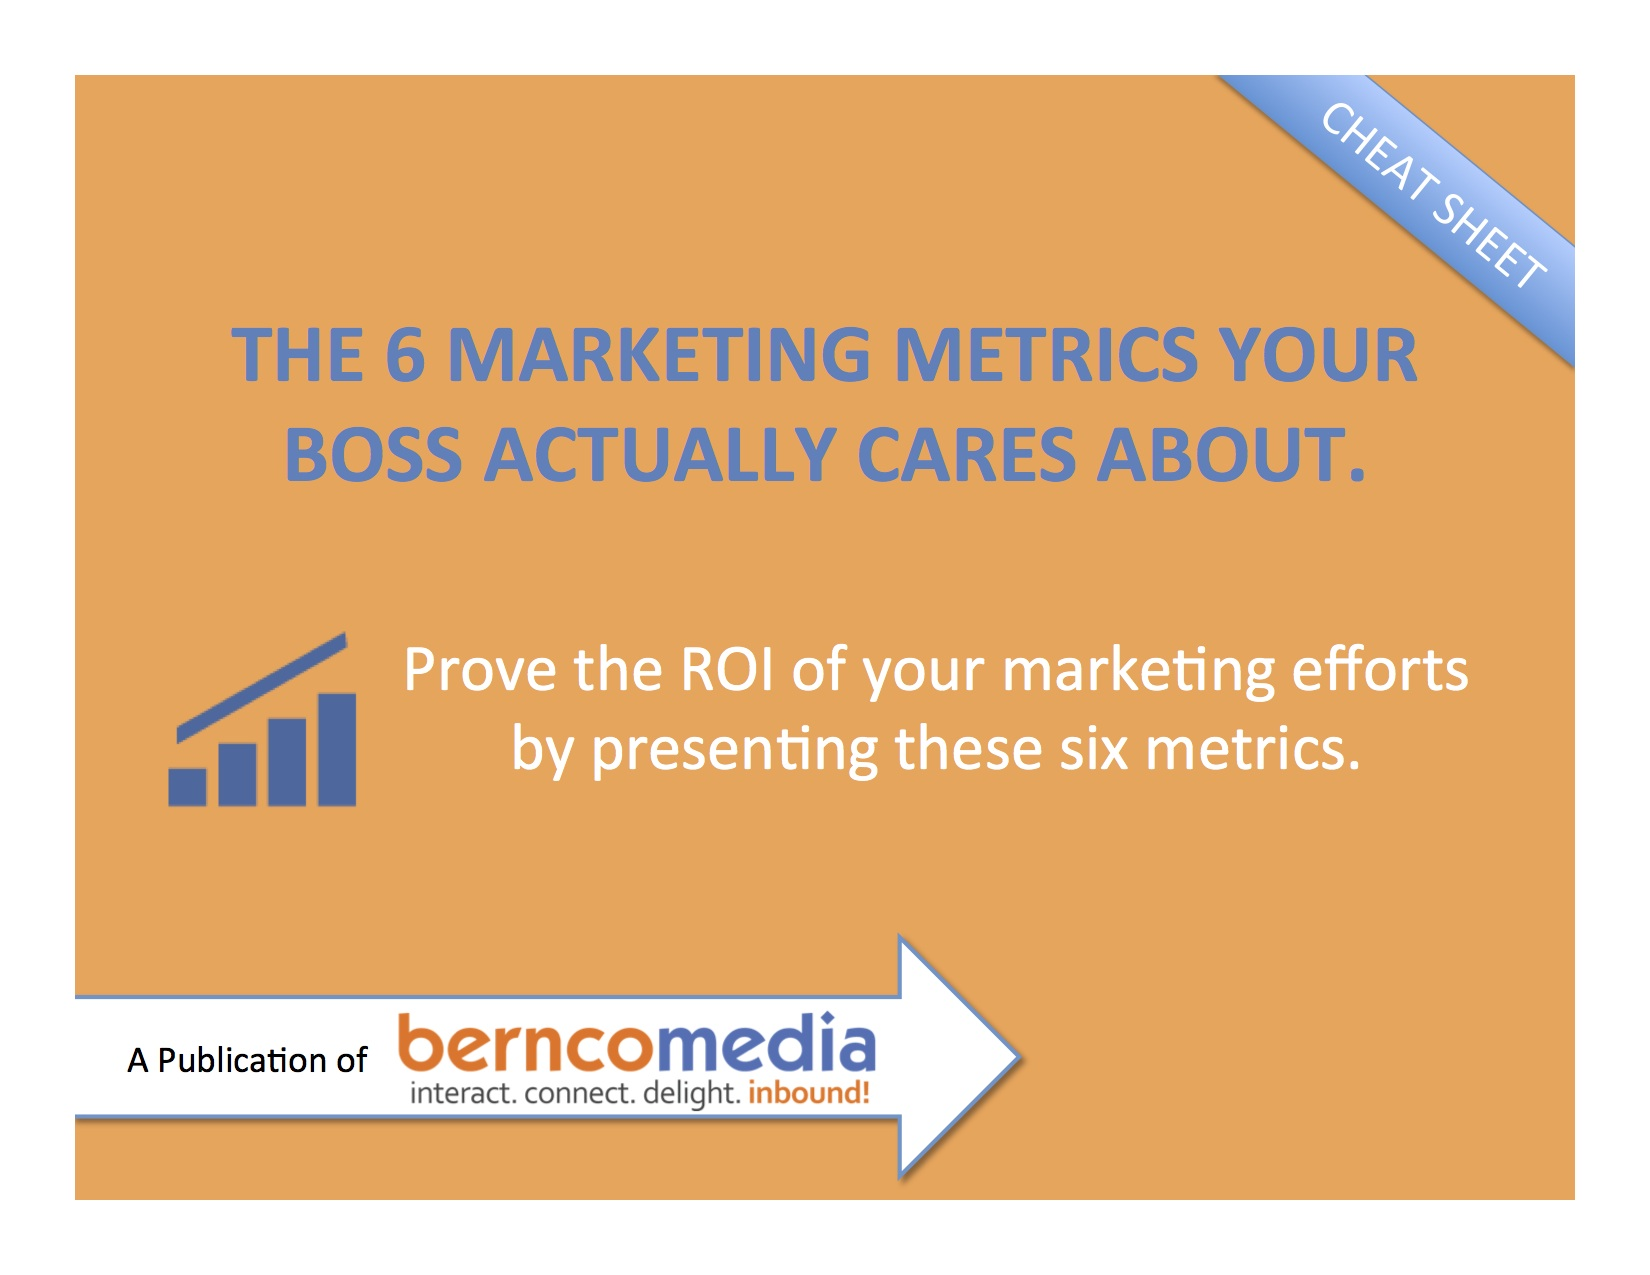 The_6_Marketing_Metrics_Your_Boss_Actually_Cares_About_-_Bernco_Media_eBook_Cover